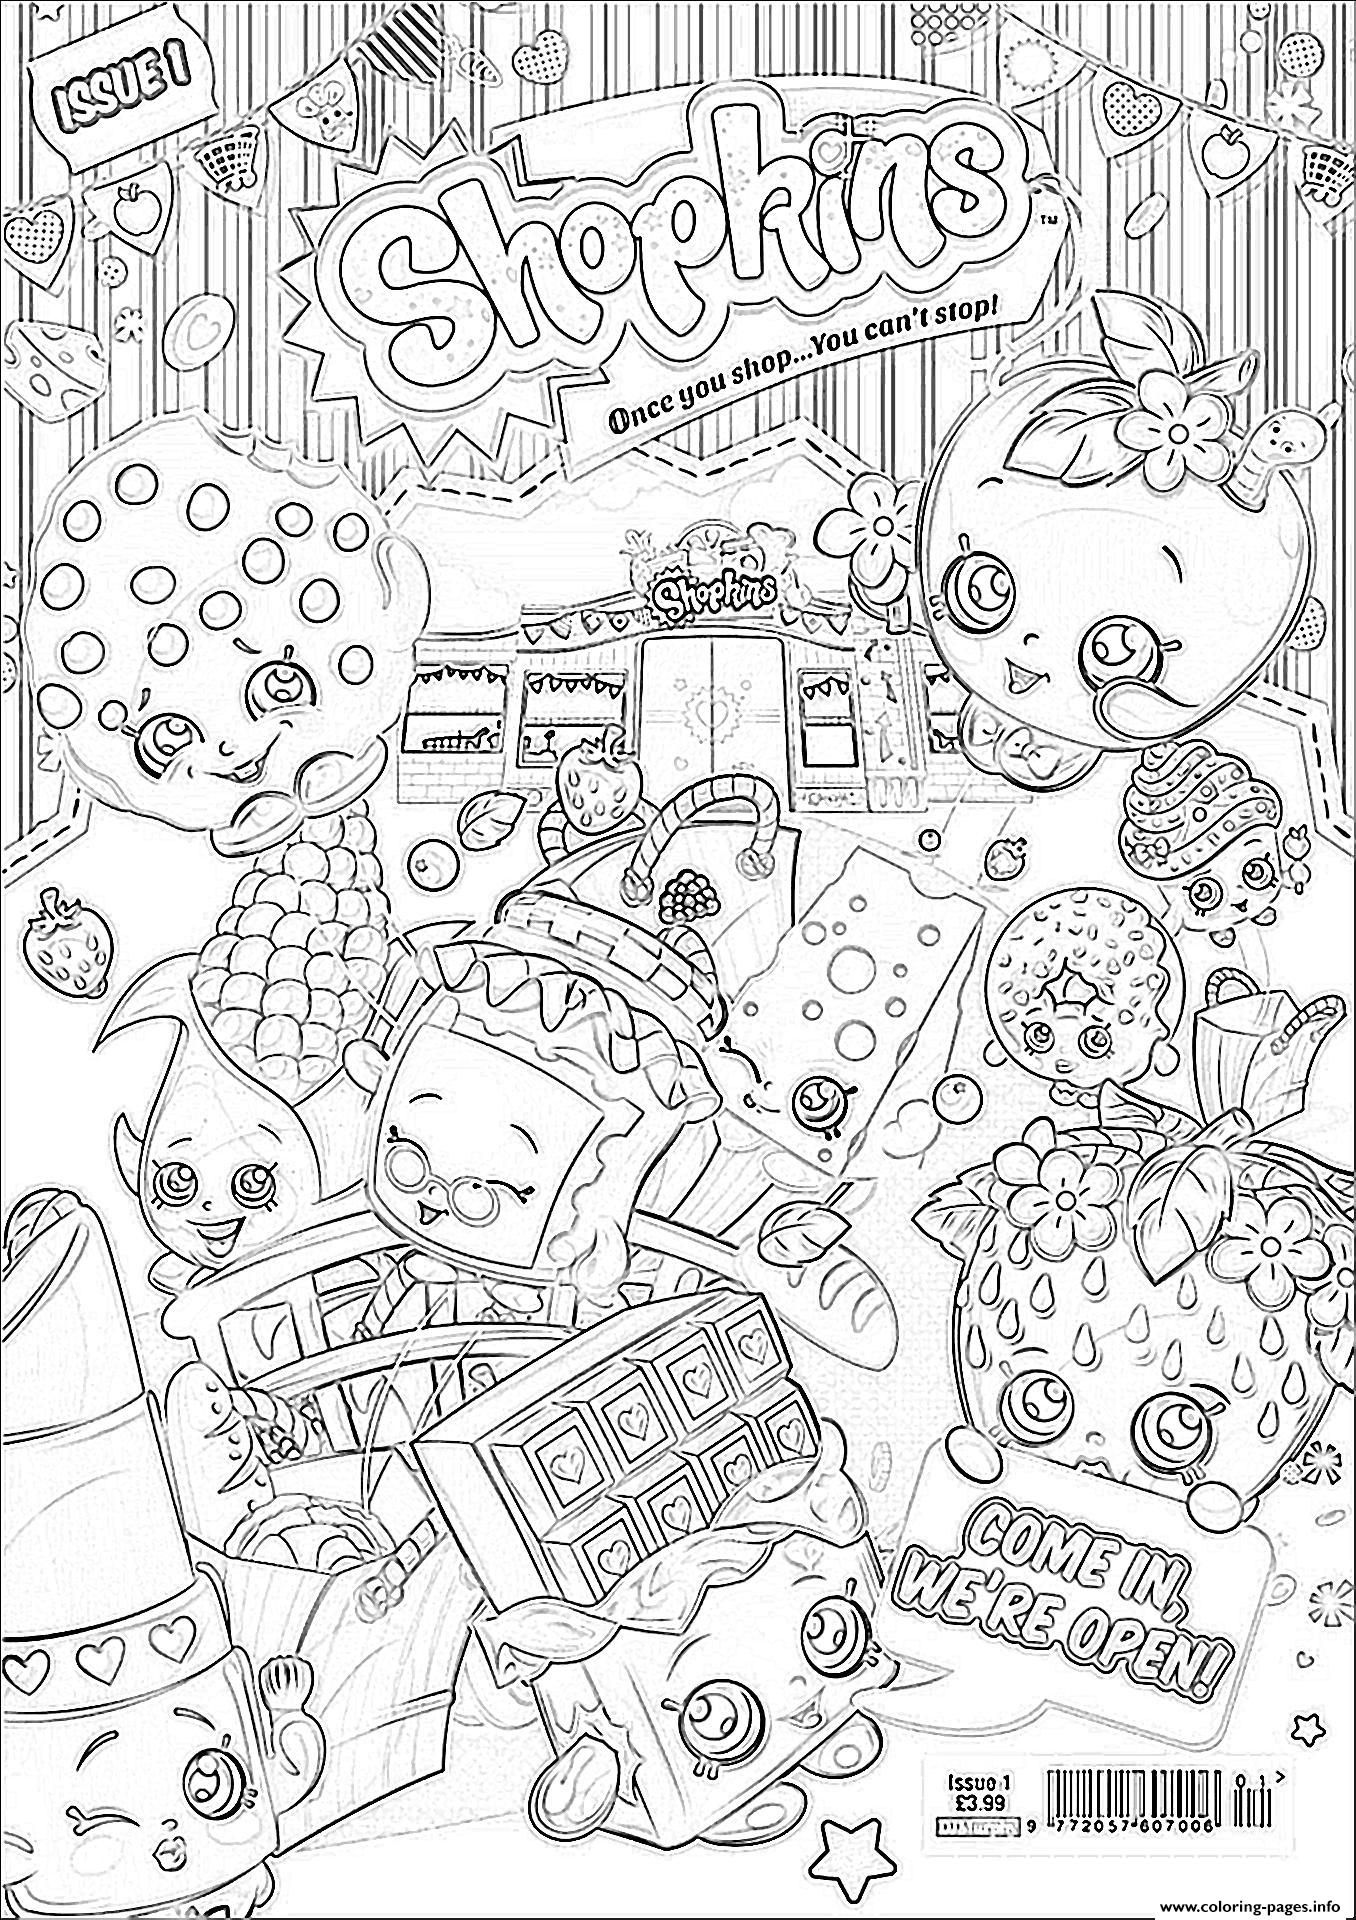 Shopkins coloring pages nail polish - Print Shopkins We Are Open Coloring Pages